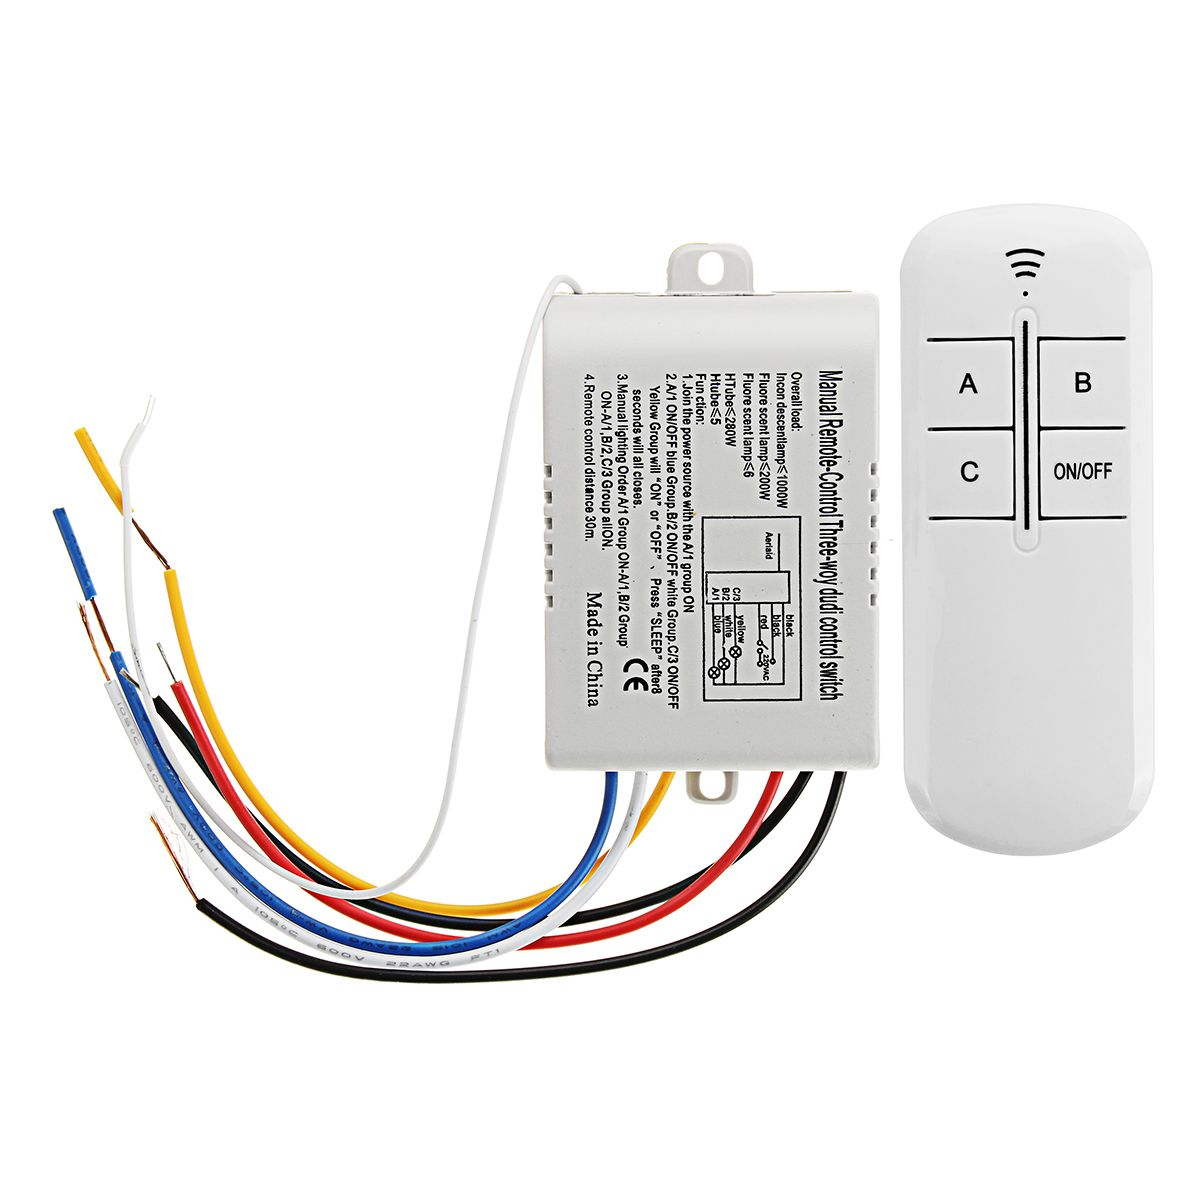 medium resolution of 3 ways on off wireless remote control switch receiver transmitter for led lamp ac220v